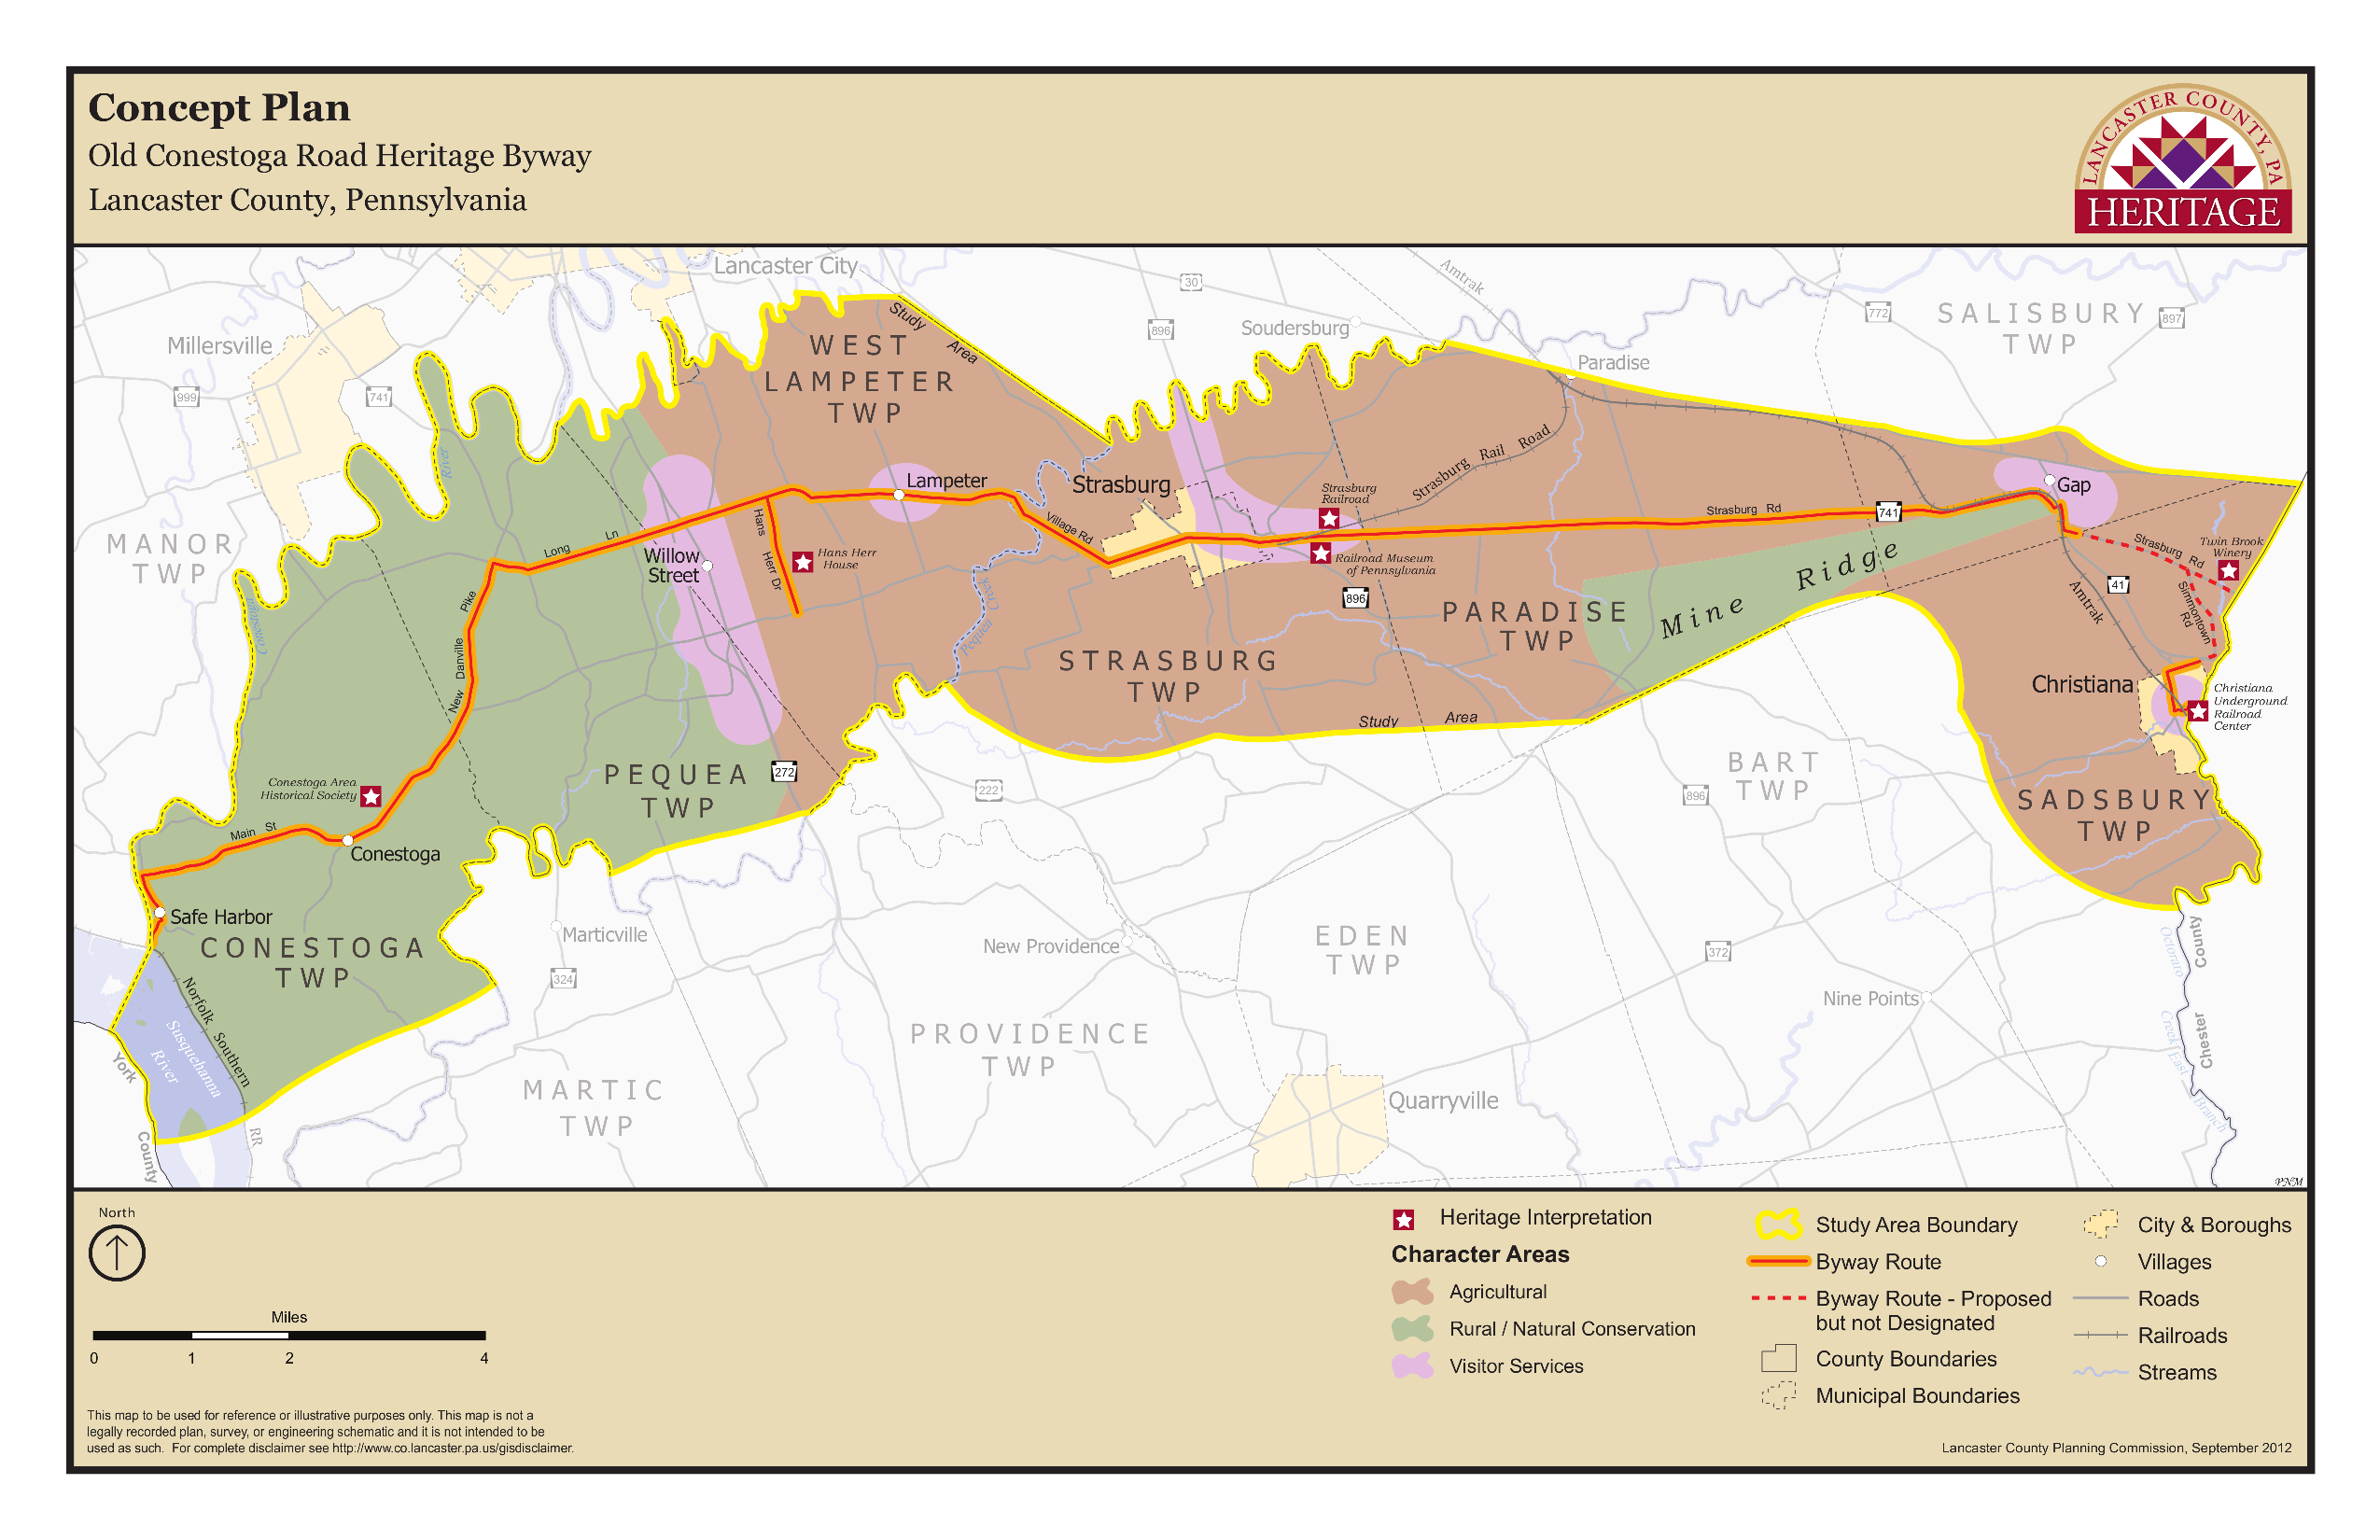 map of the Old Conestoga Road Heritage Byway Concept Plan